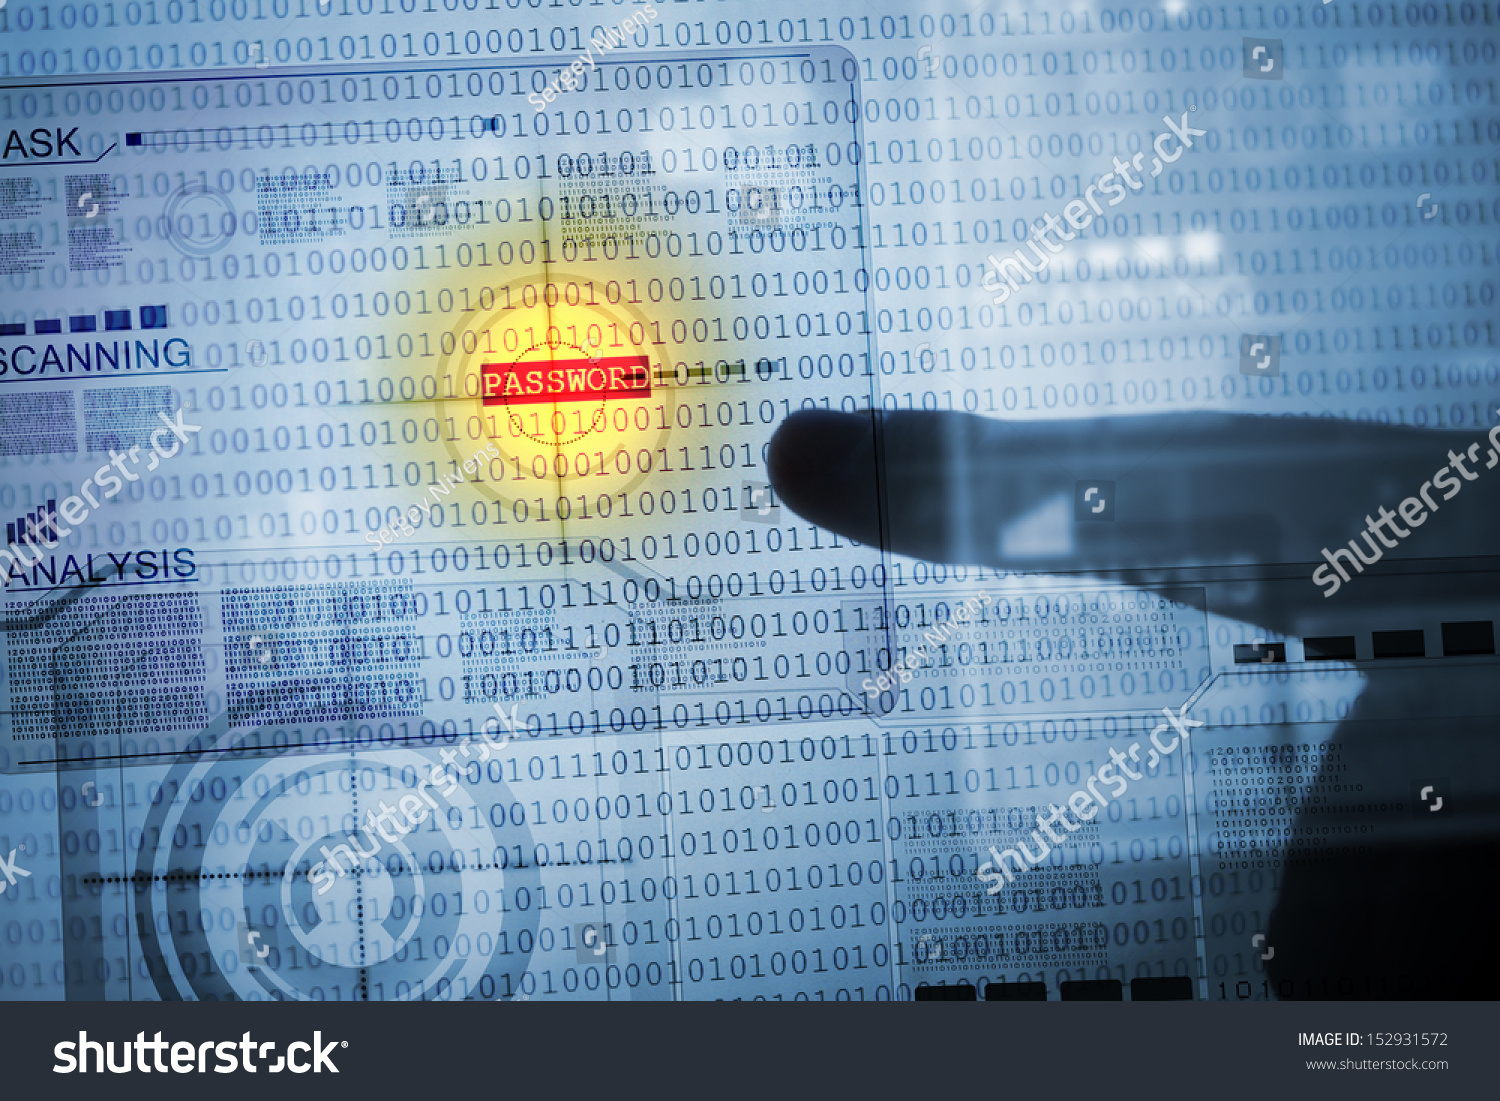 how to use binary code in computer